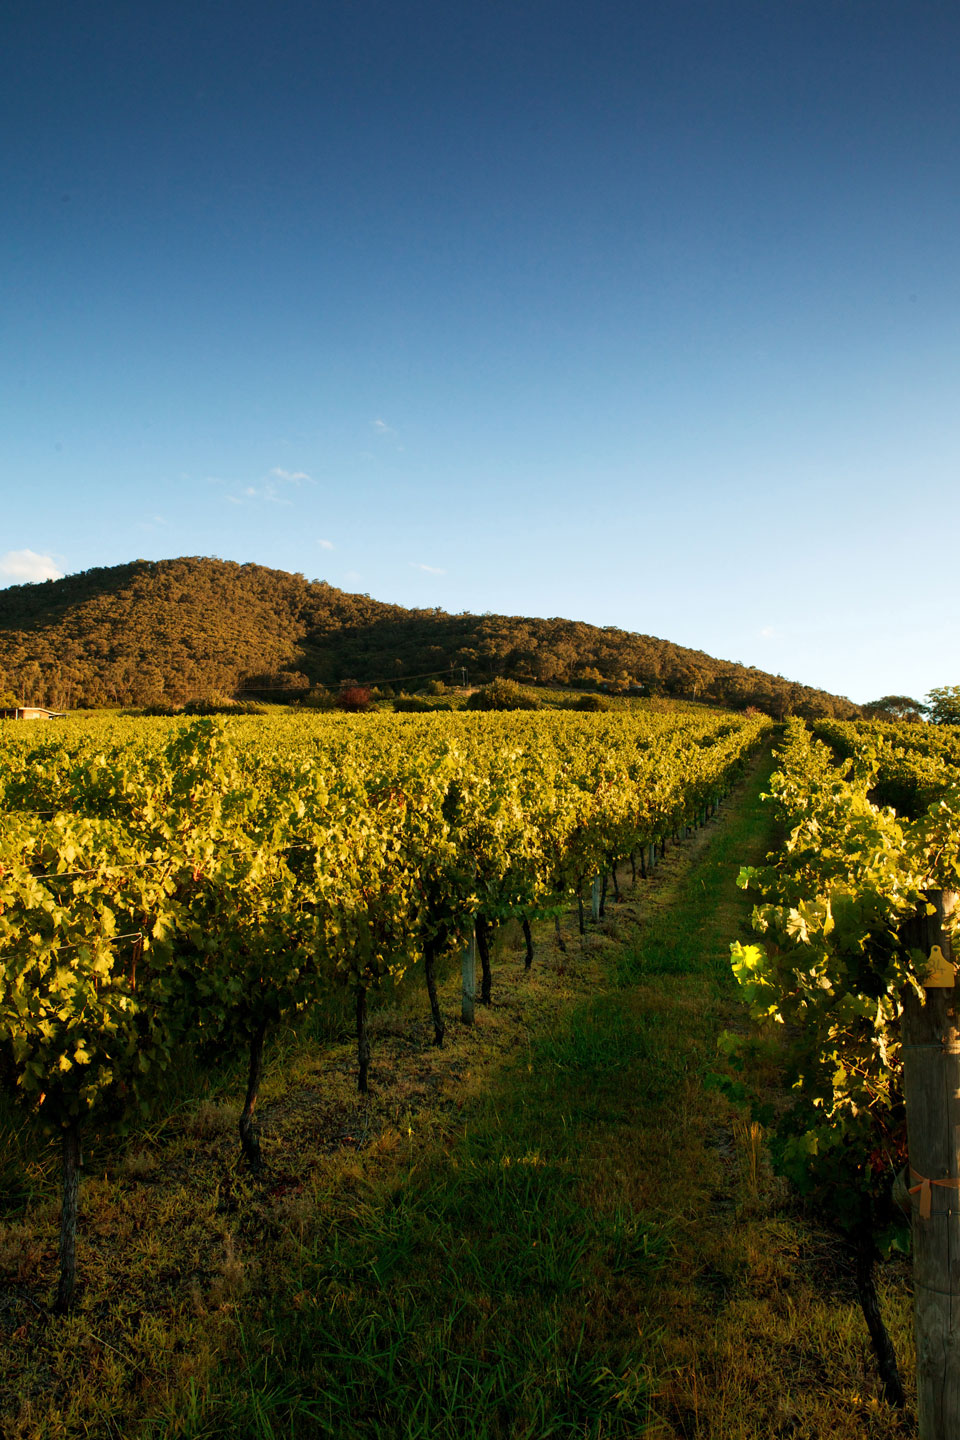 the Warramate vineyards at Yarra Yering.